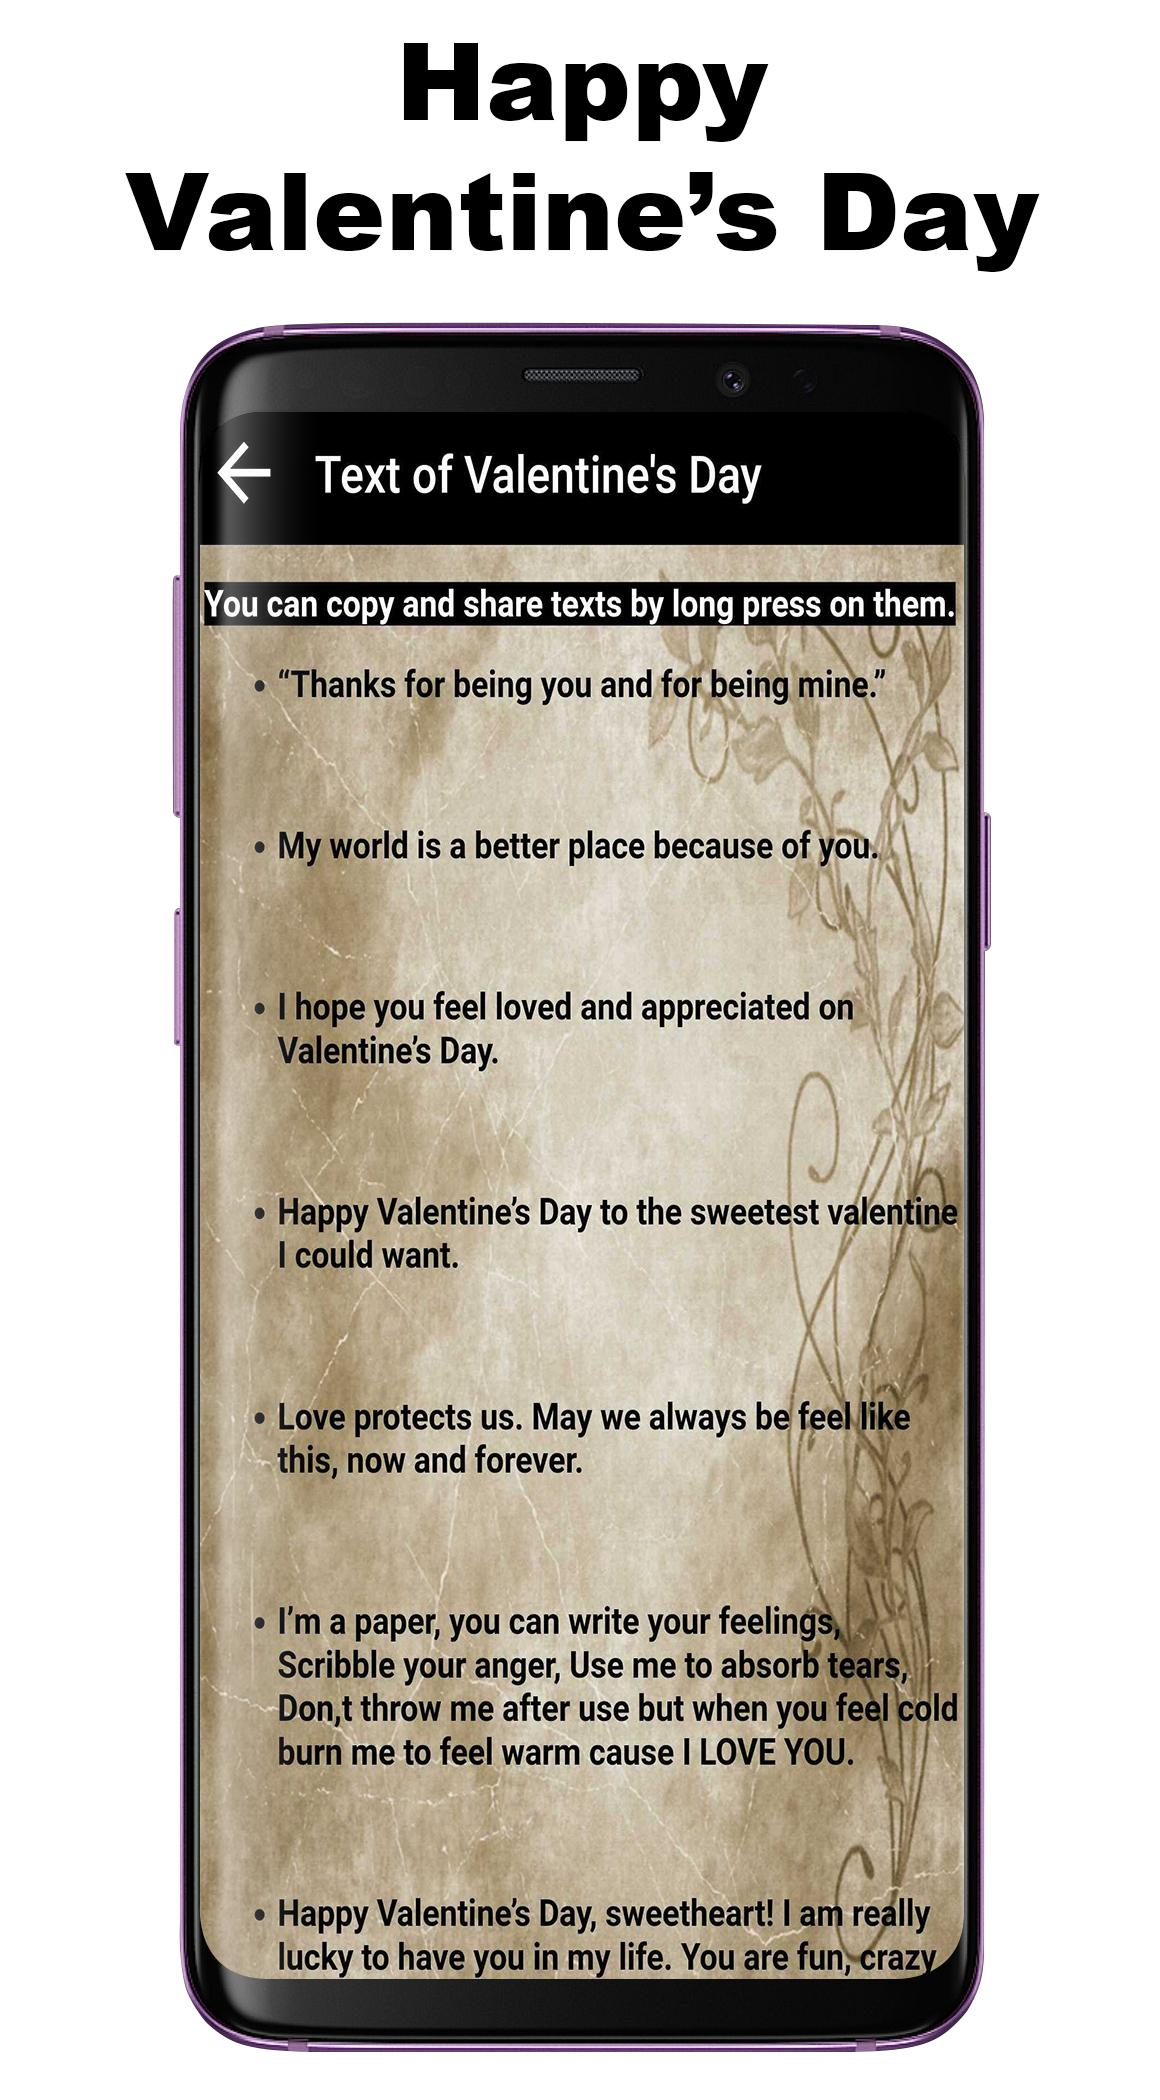 Valentines Day Quotes And Images Messenger For Android Apk